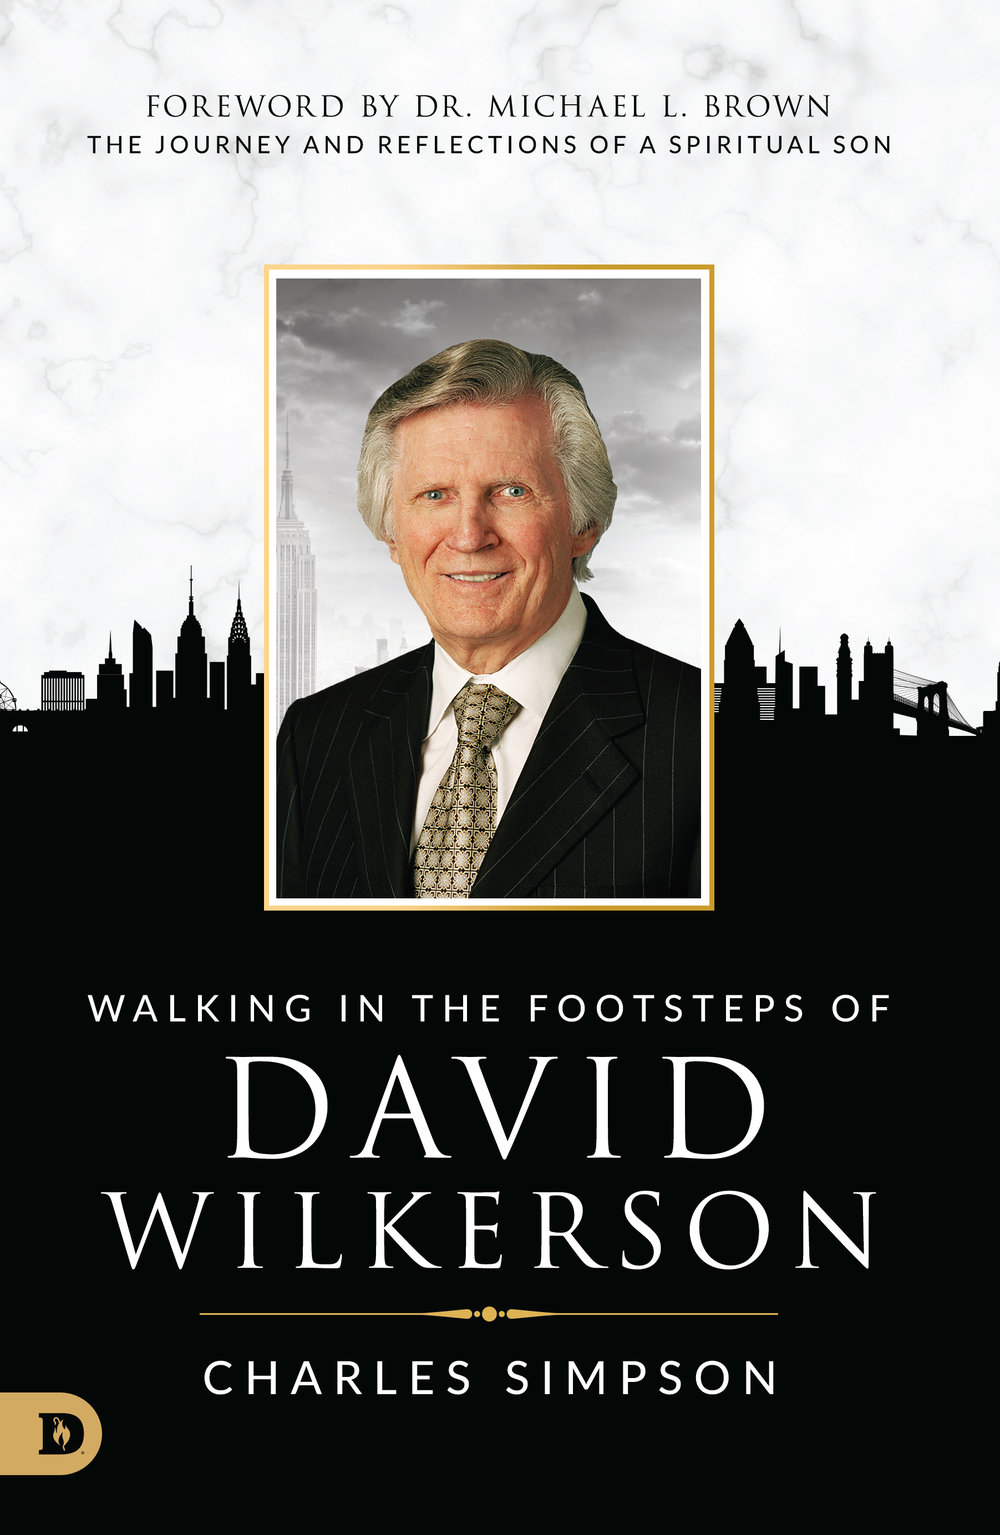 """Walking in the Footsteps of David Wilkerson, my fifth book, is surely the most important one I've written; and the most encouraging! —Pastor Charles       To ORDER      Endorsements    Foreword by Dr. Michael Brown    Table of Contents  (Each chapter is a quote from Pastor Dave)   Back Cover    PDF of first few chapters      Other books by Pastor Charles:    John, the Gospel of Sonship    Angel Lucifer, Evil's Origin    Christian Island Parables"